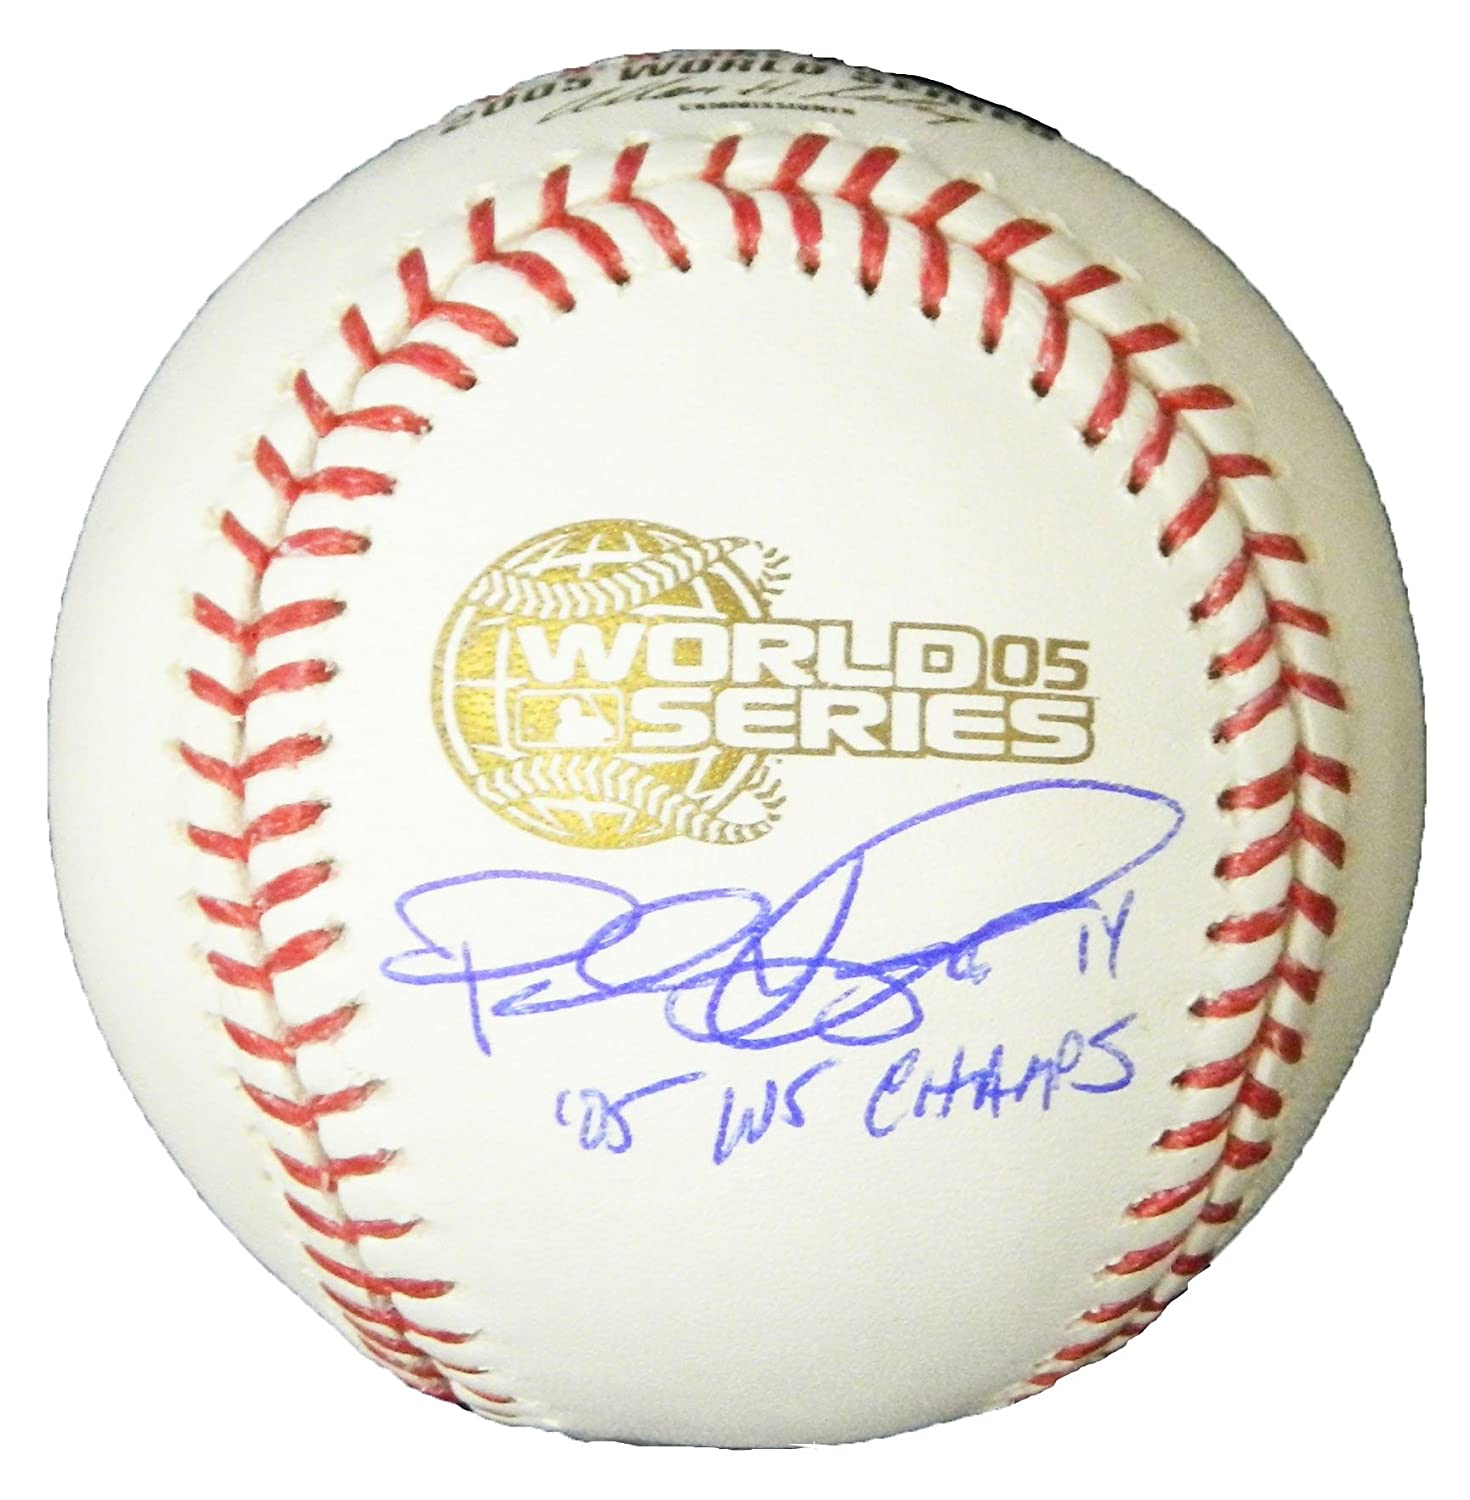 Paul Konerko Signed Rawlings Official 2005 World Series Baseball w/05 WS Champs